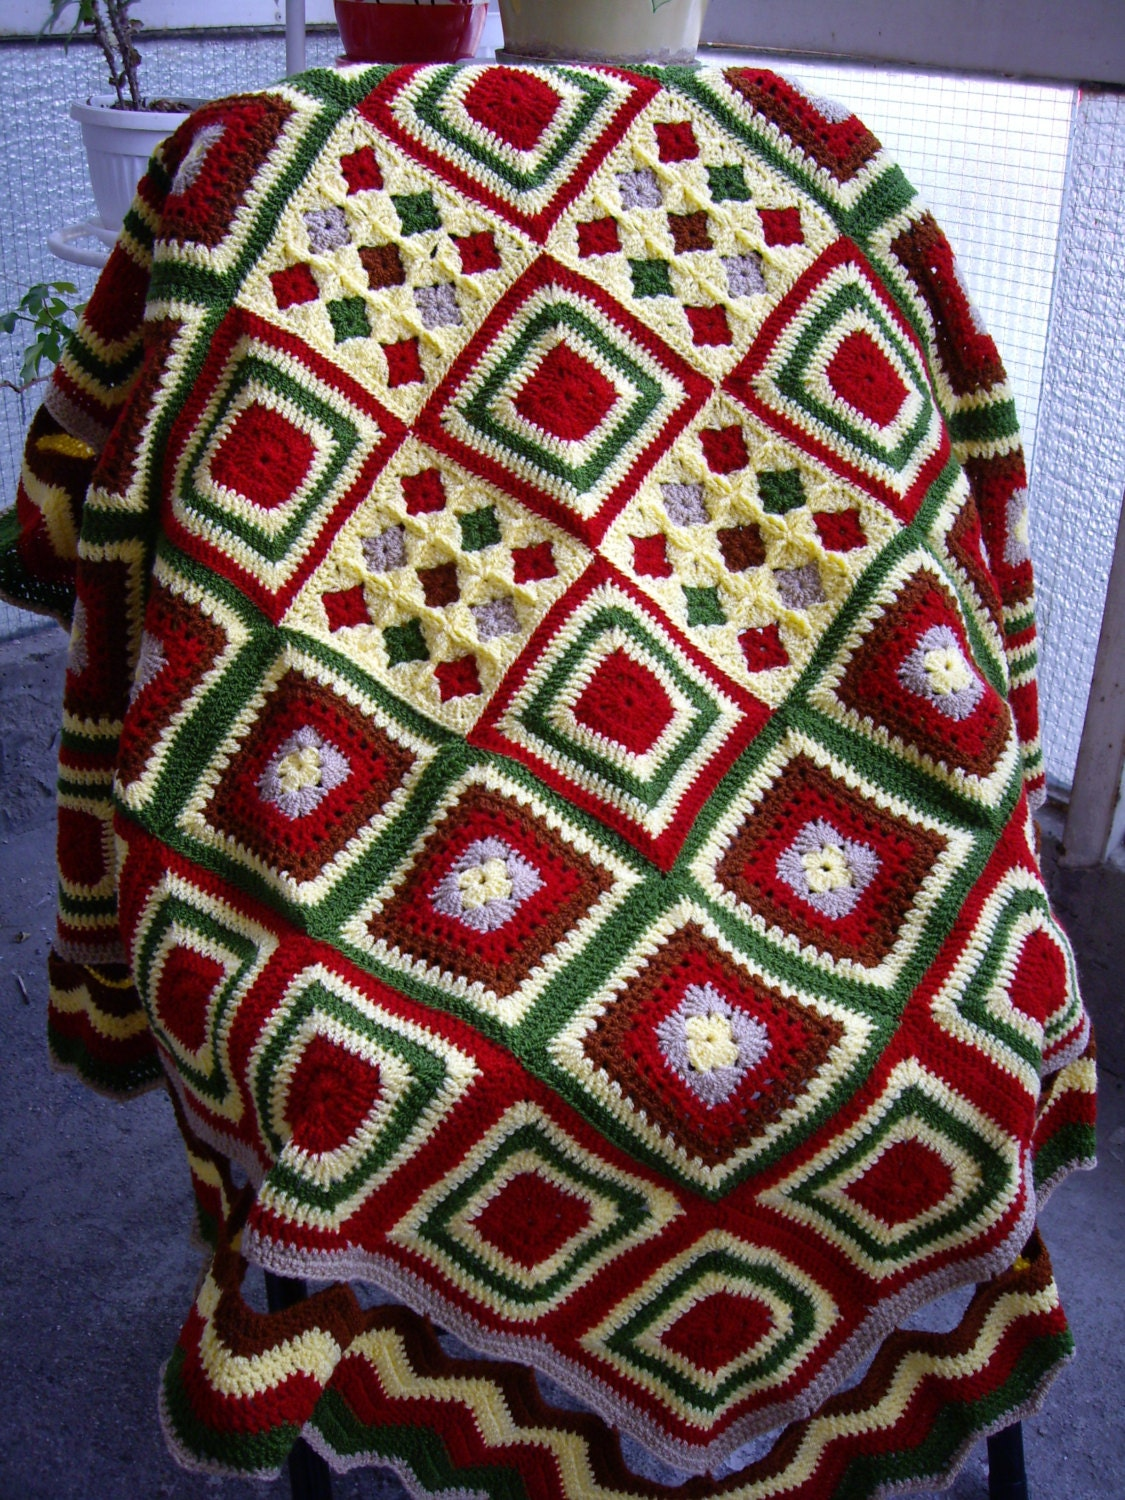 Knitting Granny Square Blanket : Granny square crochet blanket knitting patchwork by